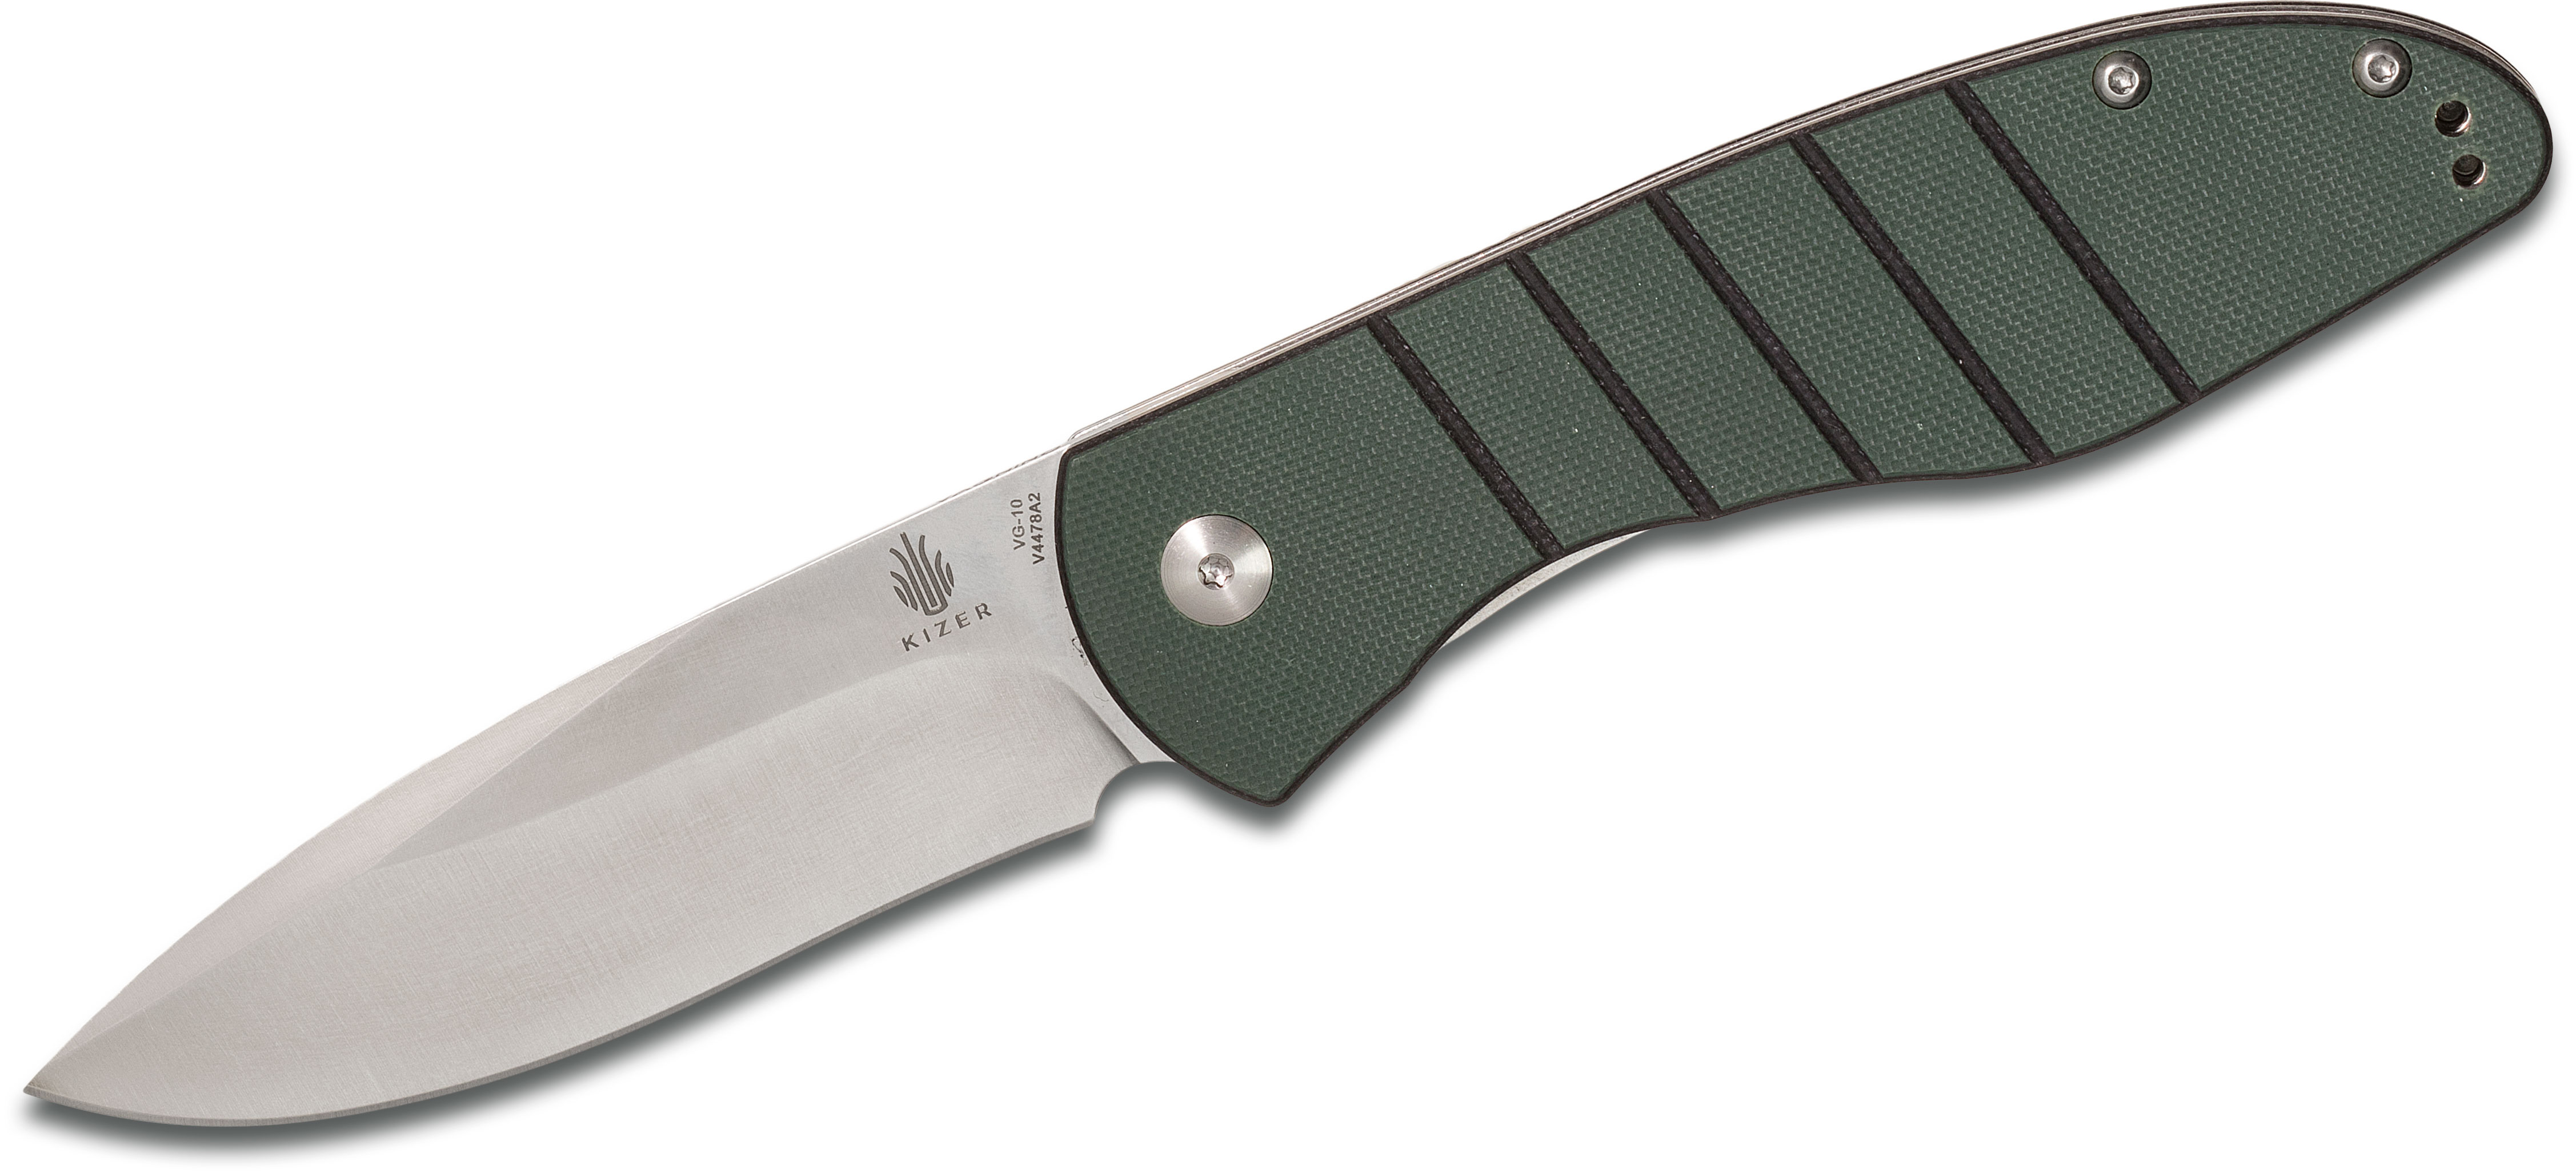 Kizer Cutlery Vanguard V4478A2 Michael Vagnino Velox 2 Flipper 3.375 inch VG10 Drop Point Blade, Green G10 Handles